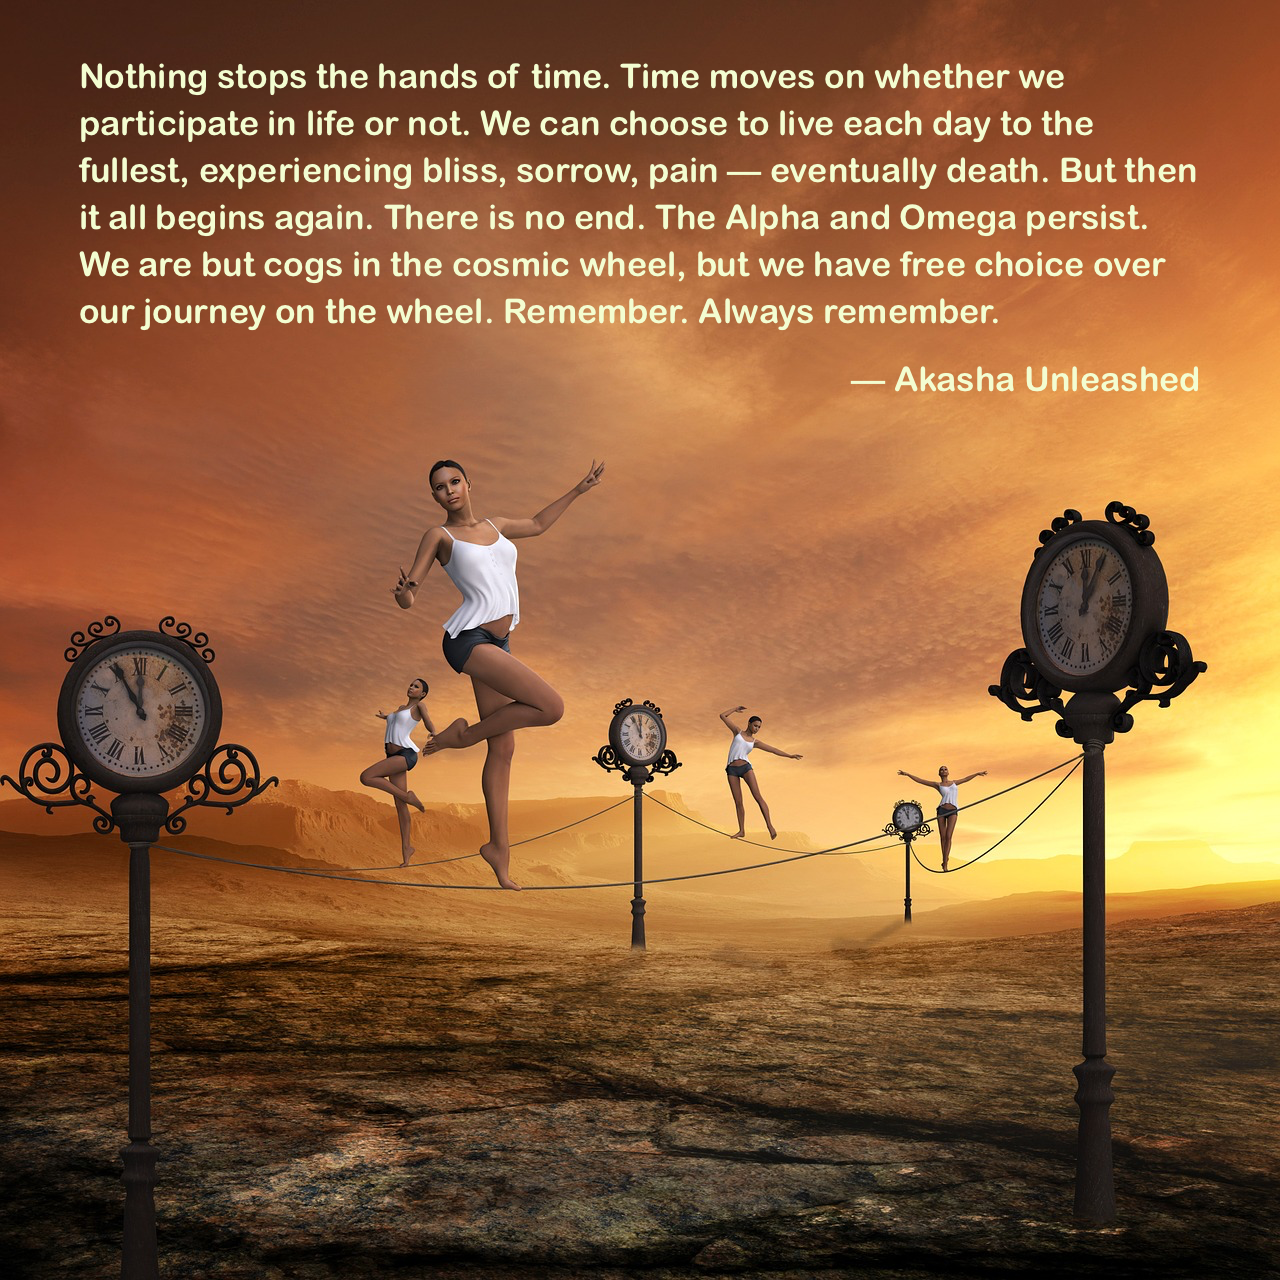 Life Journey Quotes Inspirational Time Flies But Free Choice Rulesreincarnation Life's Journey